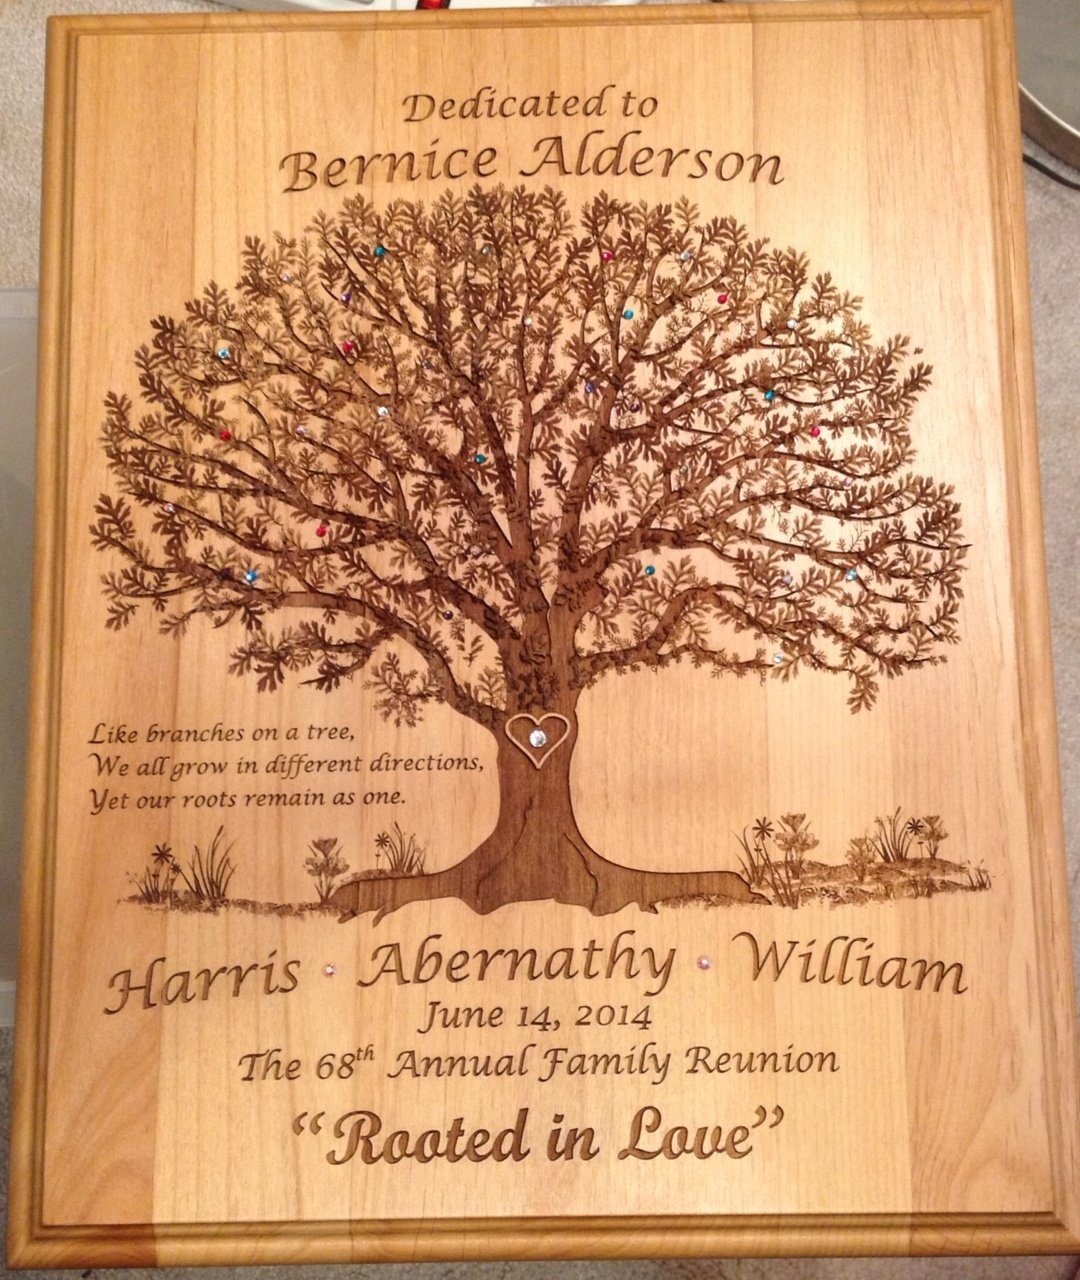 Bernice Alderson Plaque for the 68th Family Reunion